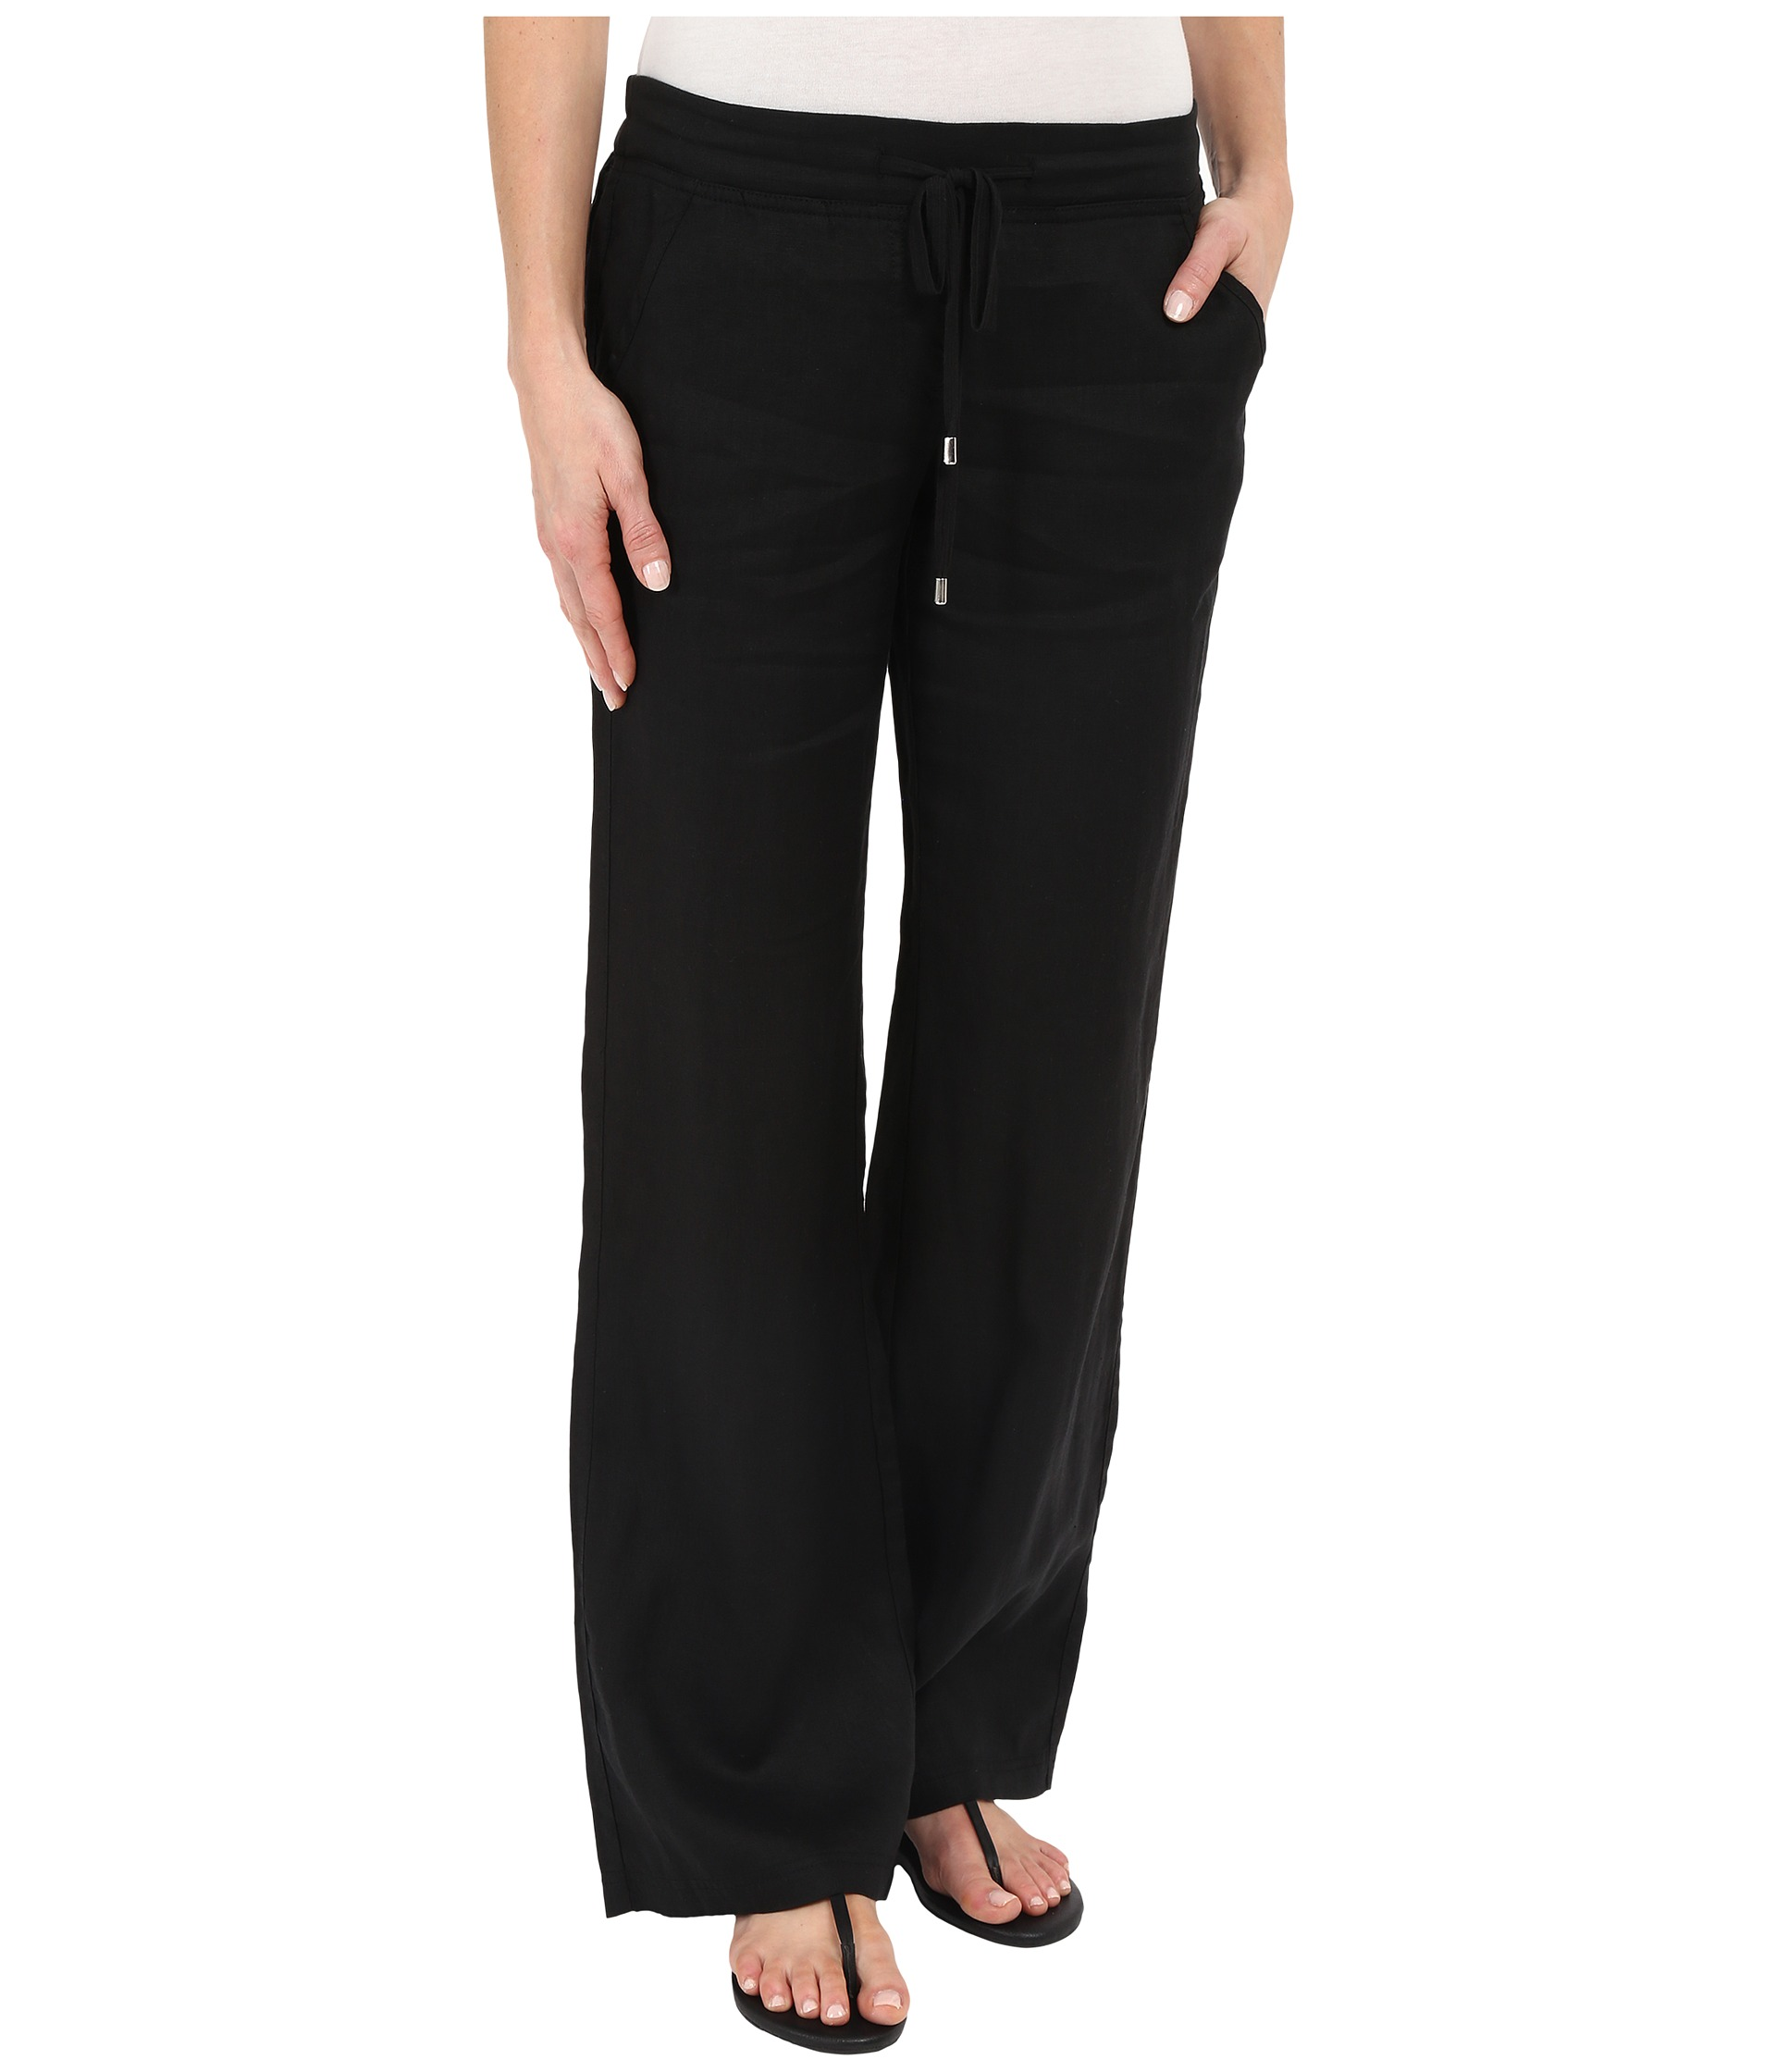 Whether you're going to a yoga class or just cleaning up around the house, our linen pants for women are a fashionable steal. Old Navy received a thumbs up from our female shoppers when we introduced the line of women's linen pants.